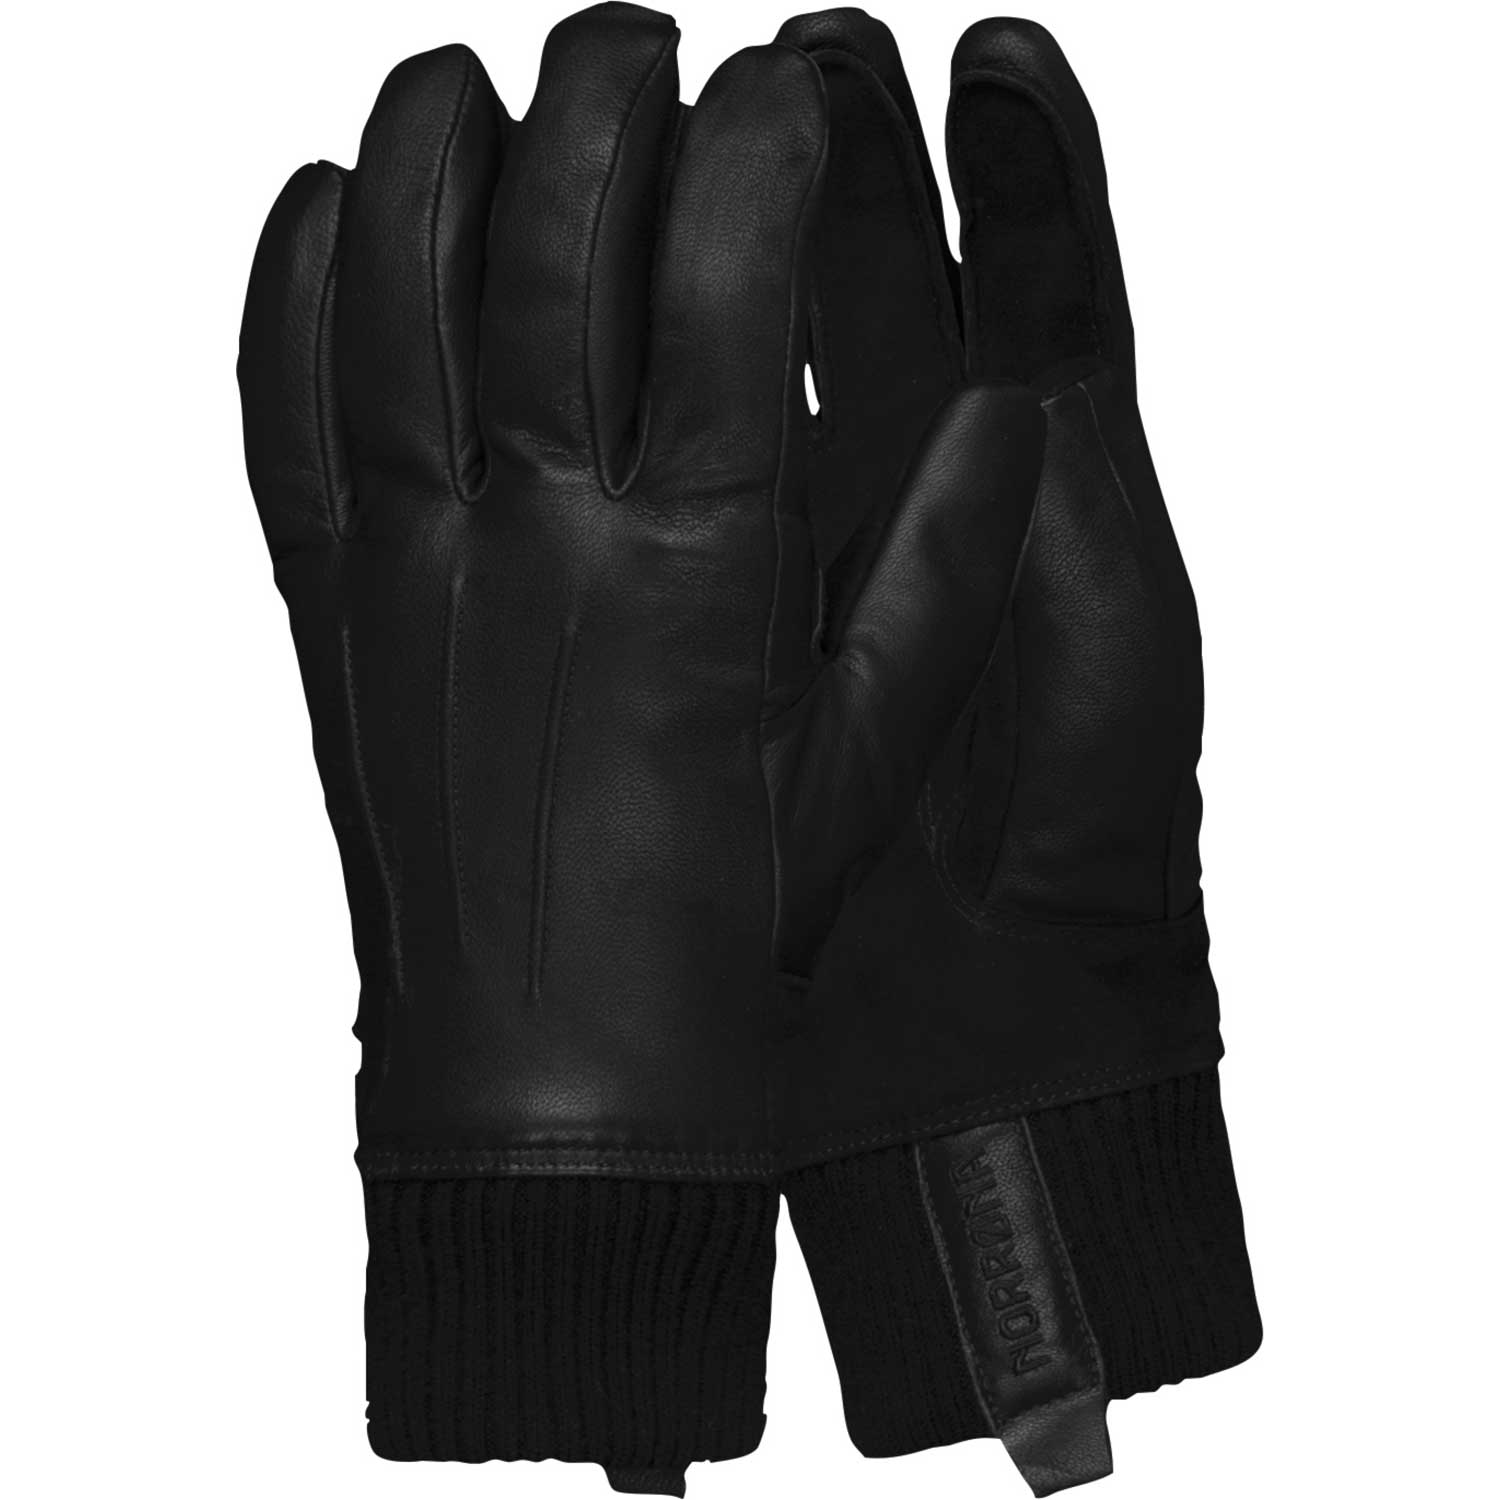 røldal dri insulated Leather Glove